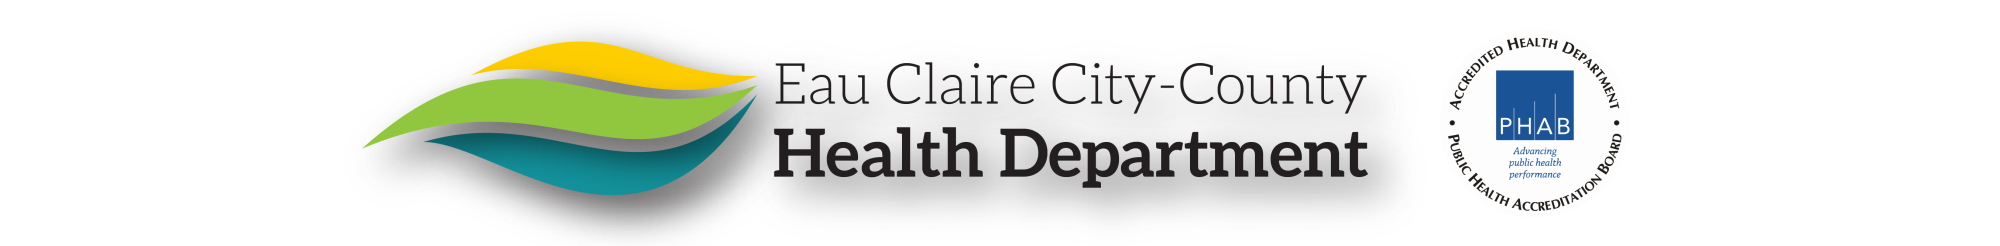 Eau Claire City-County Health Department. An accredited Health Department by the Public Health Accreditation Board (PHAB) - Advancing public health performance.